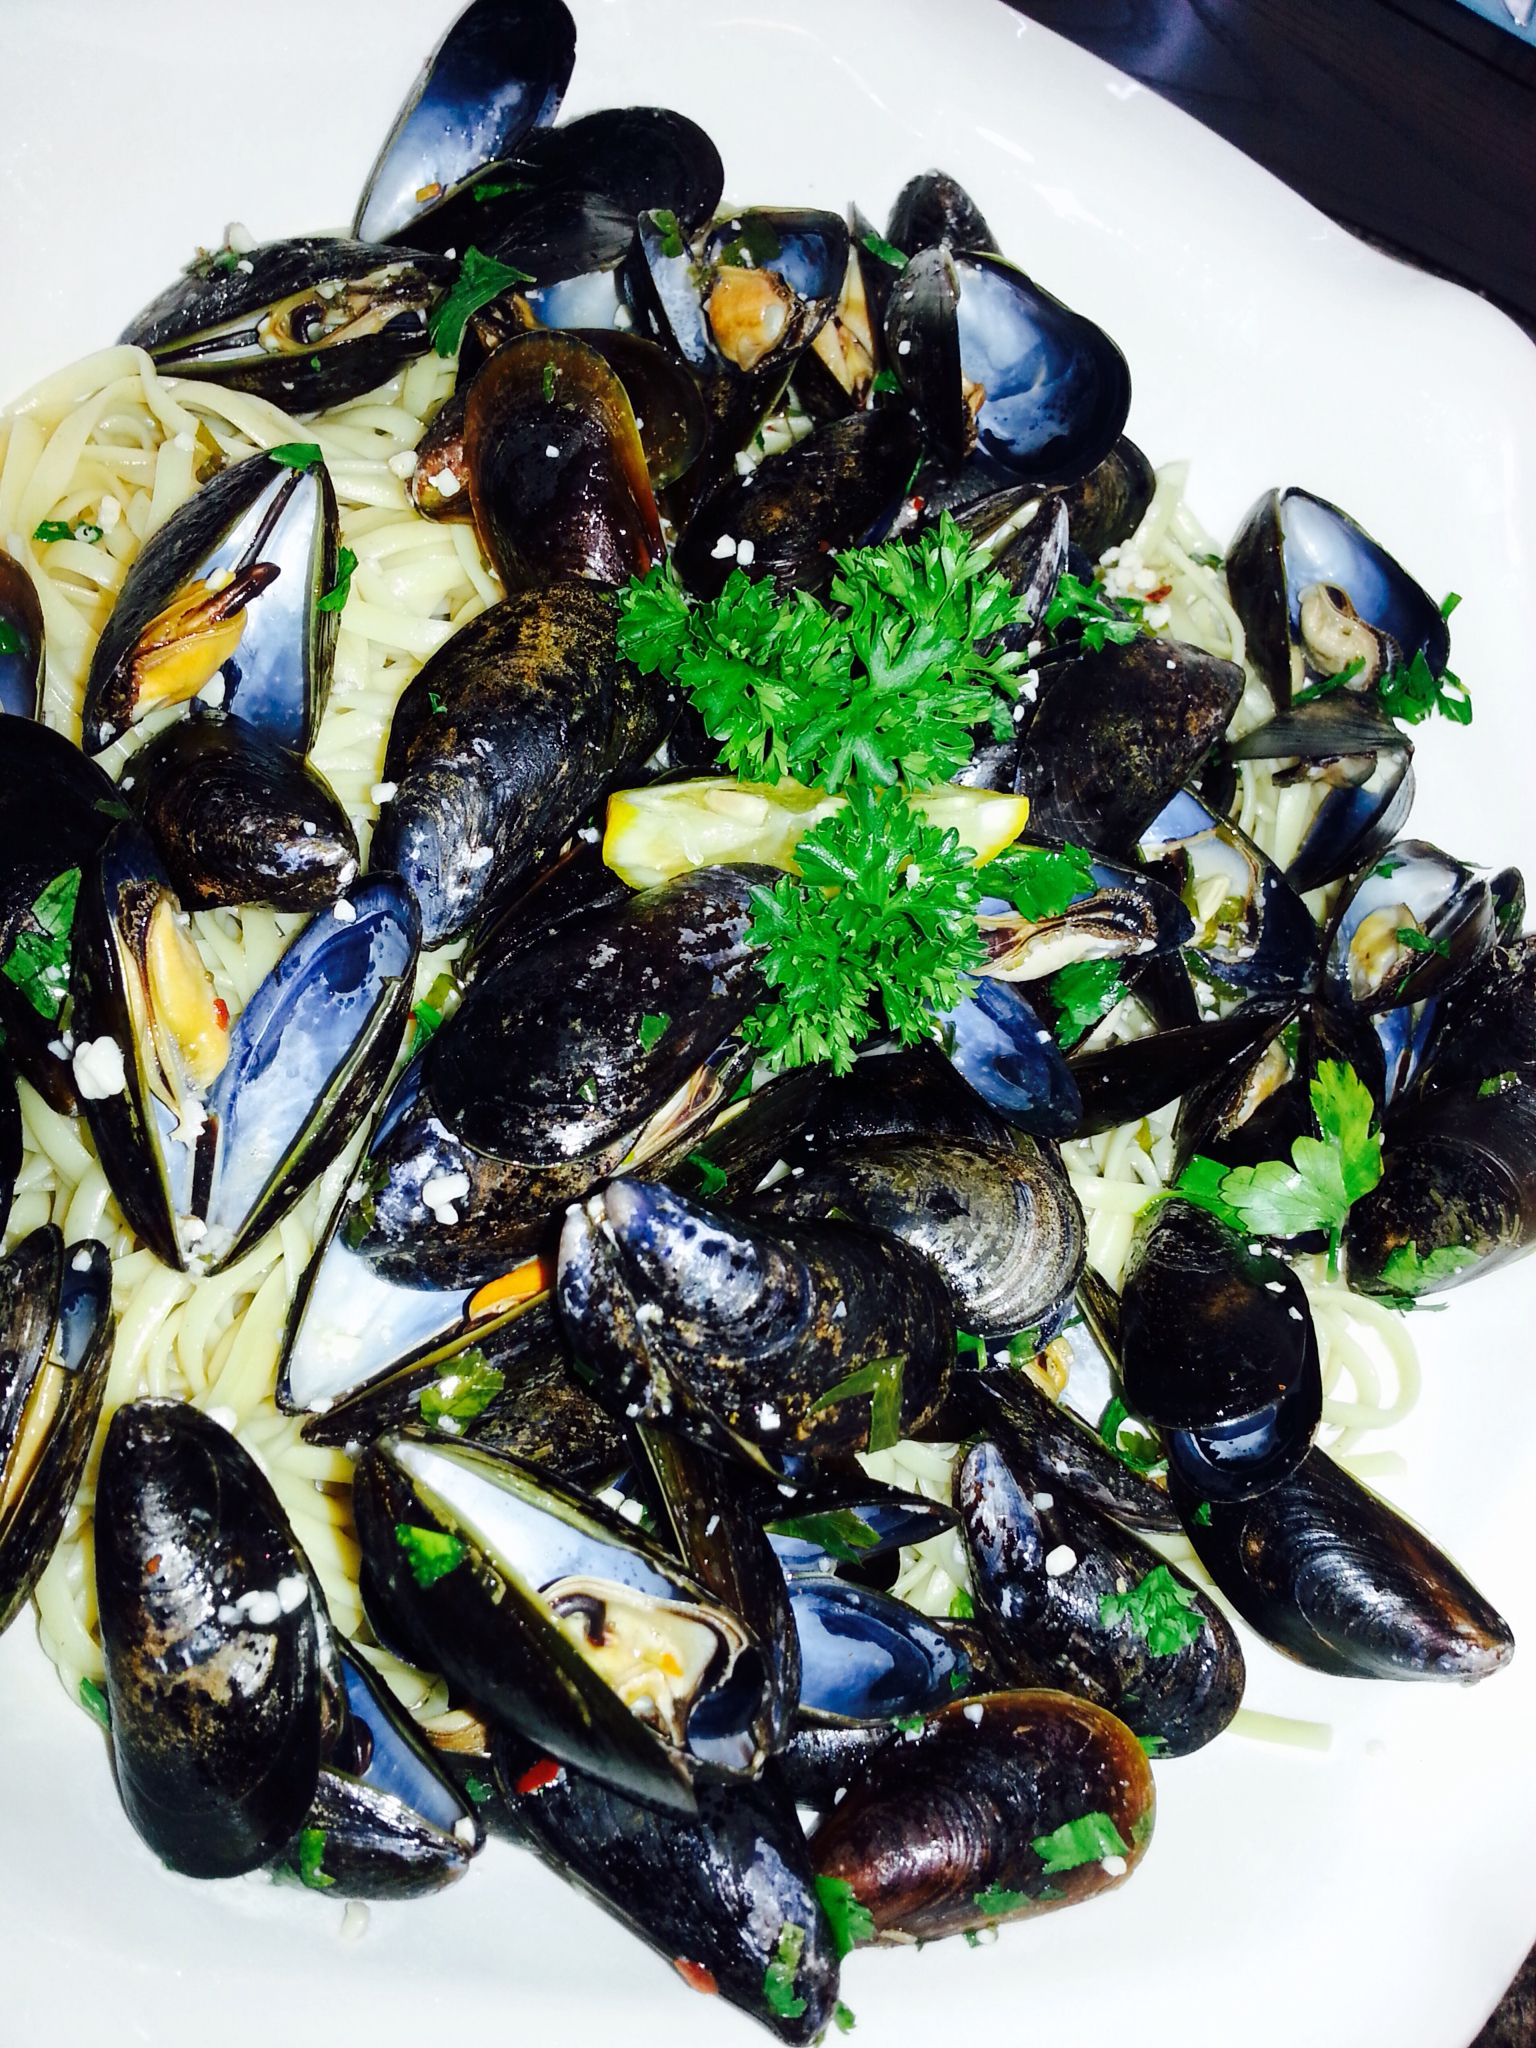 Fresh, Hot, Delicious Mussels Over A Hot Bed Of Linguine In A Garlic Butter Wine Sauce